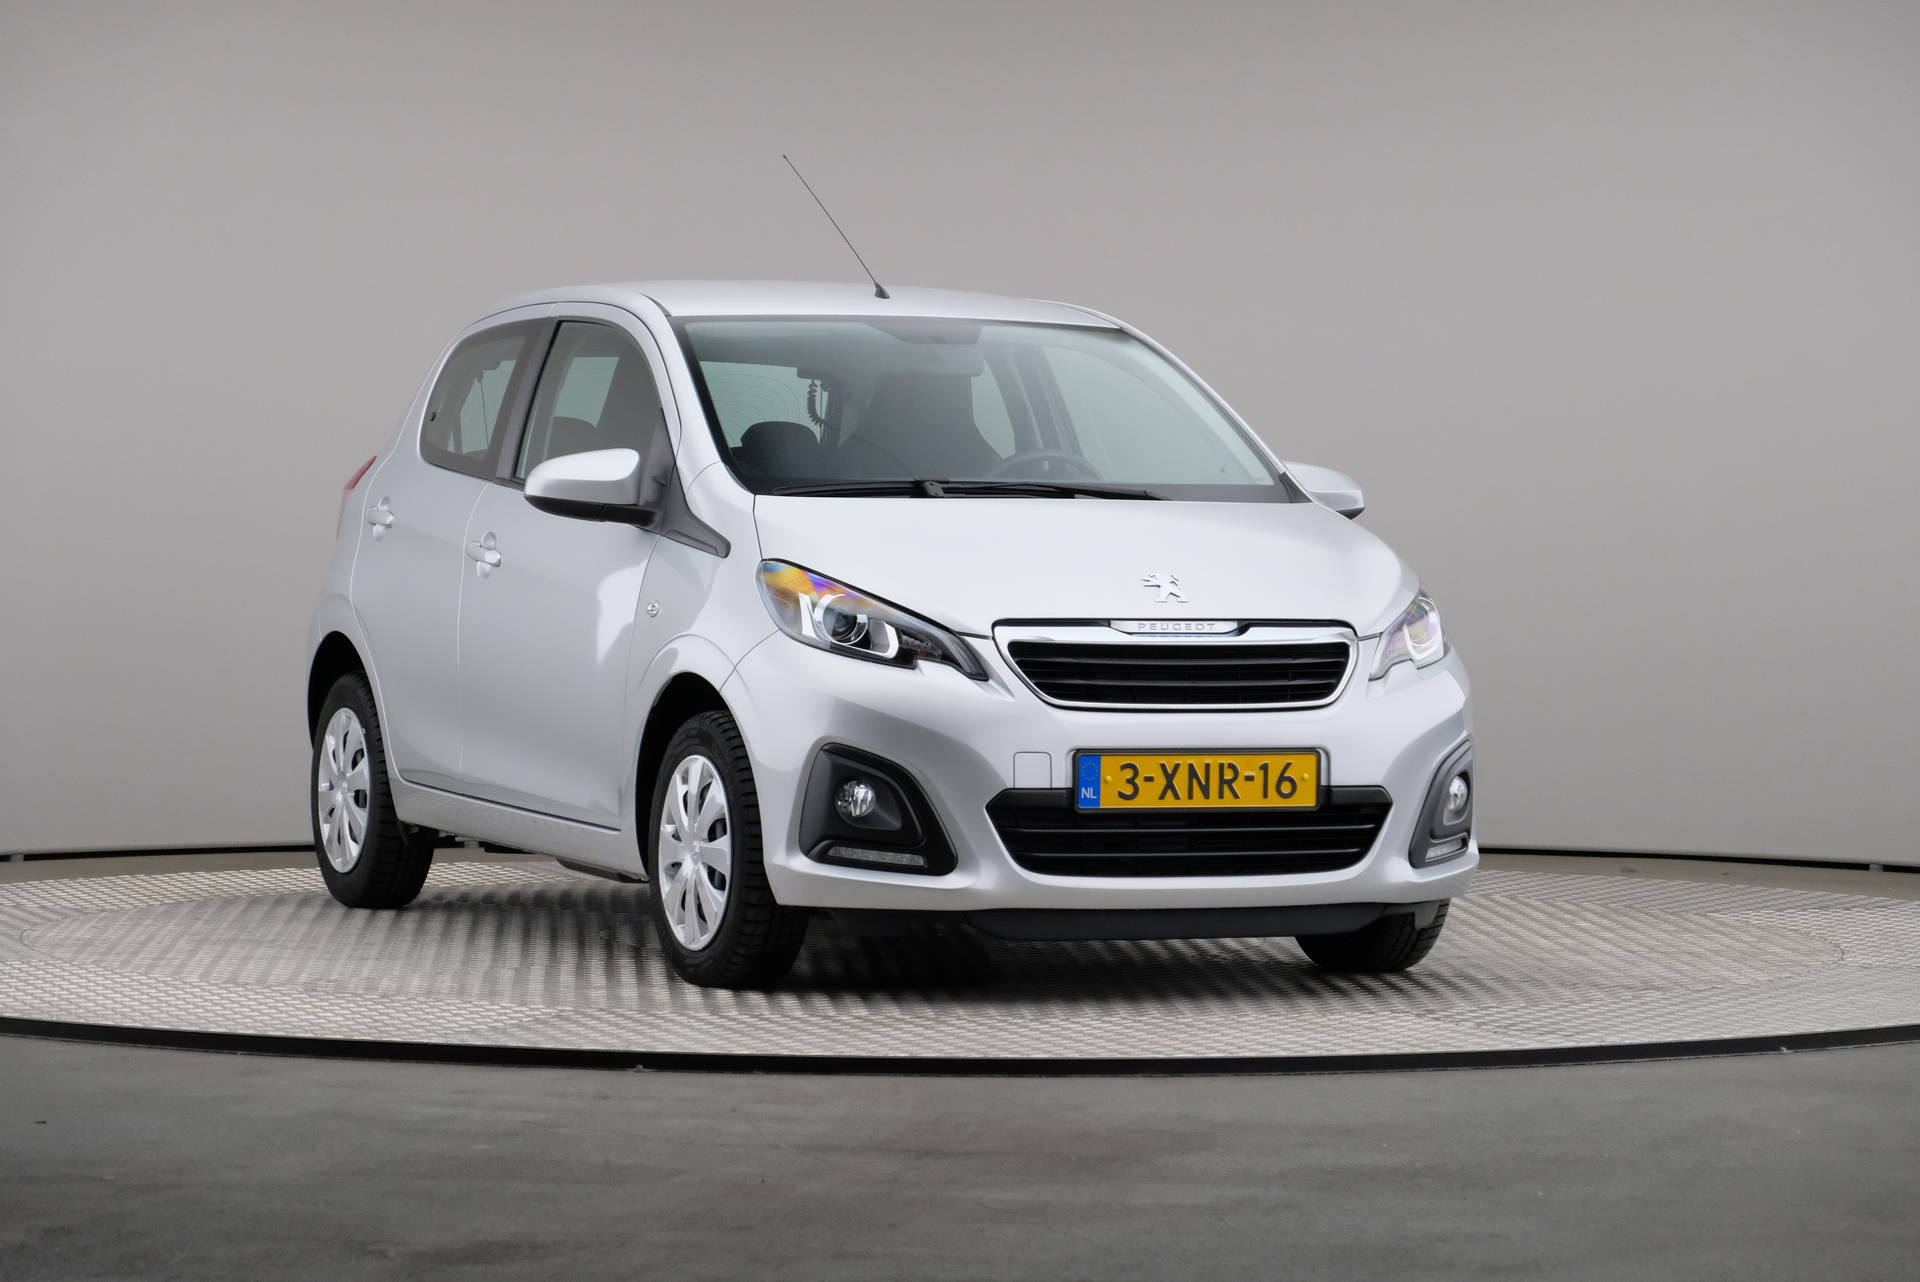 Peugeot 108 1.0 e-VTi Blue Lease, Airconditioning, 360-image30